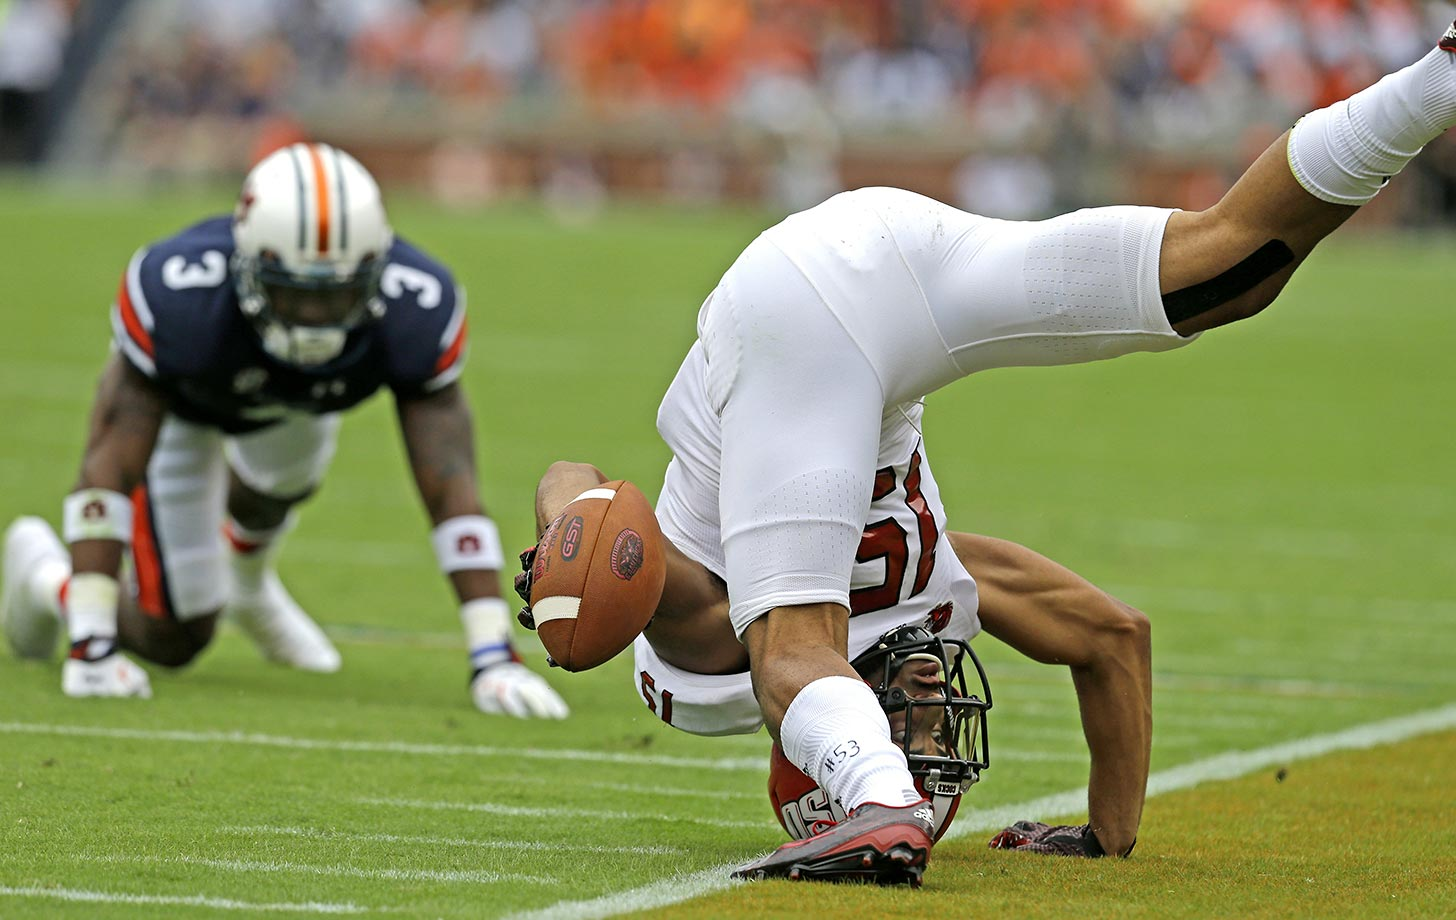 Ruben Gonzalez of Jacksonville State flips over after catching a pass against Auburn.